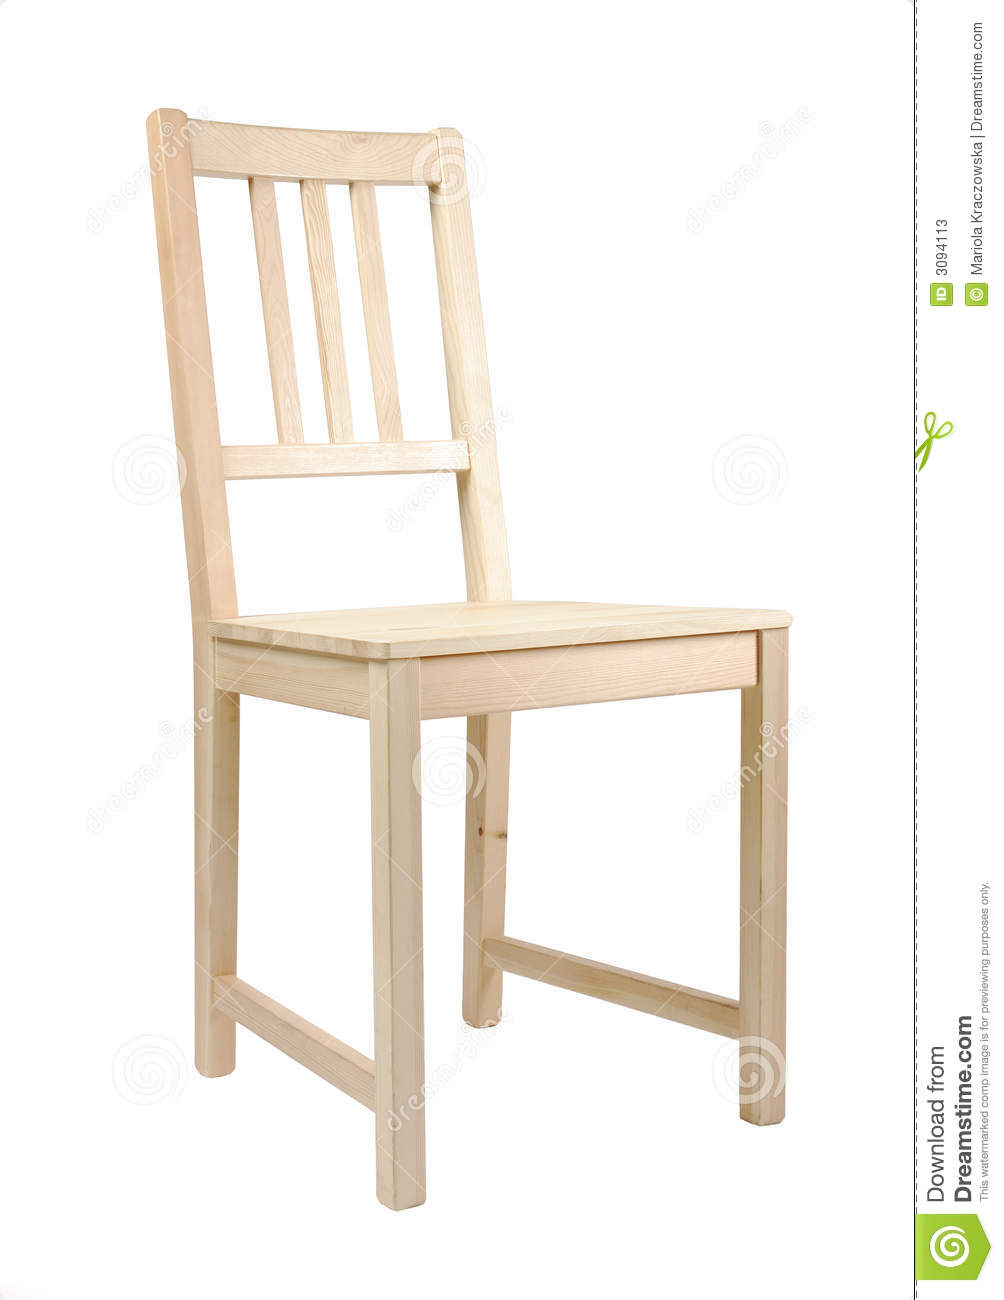 Simple wooden chair stock image. Image of design, decor